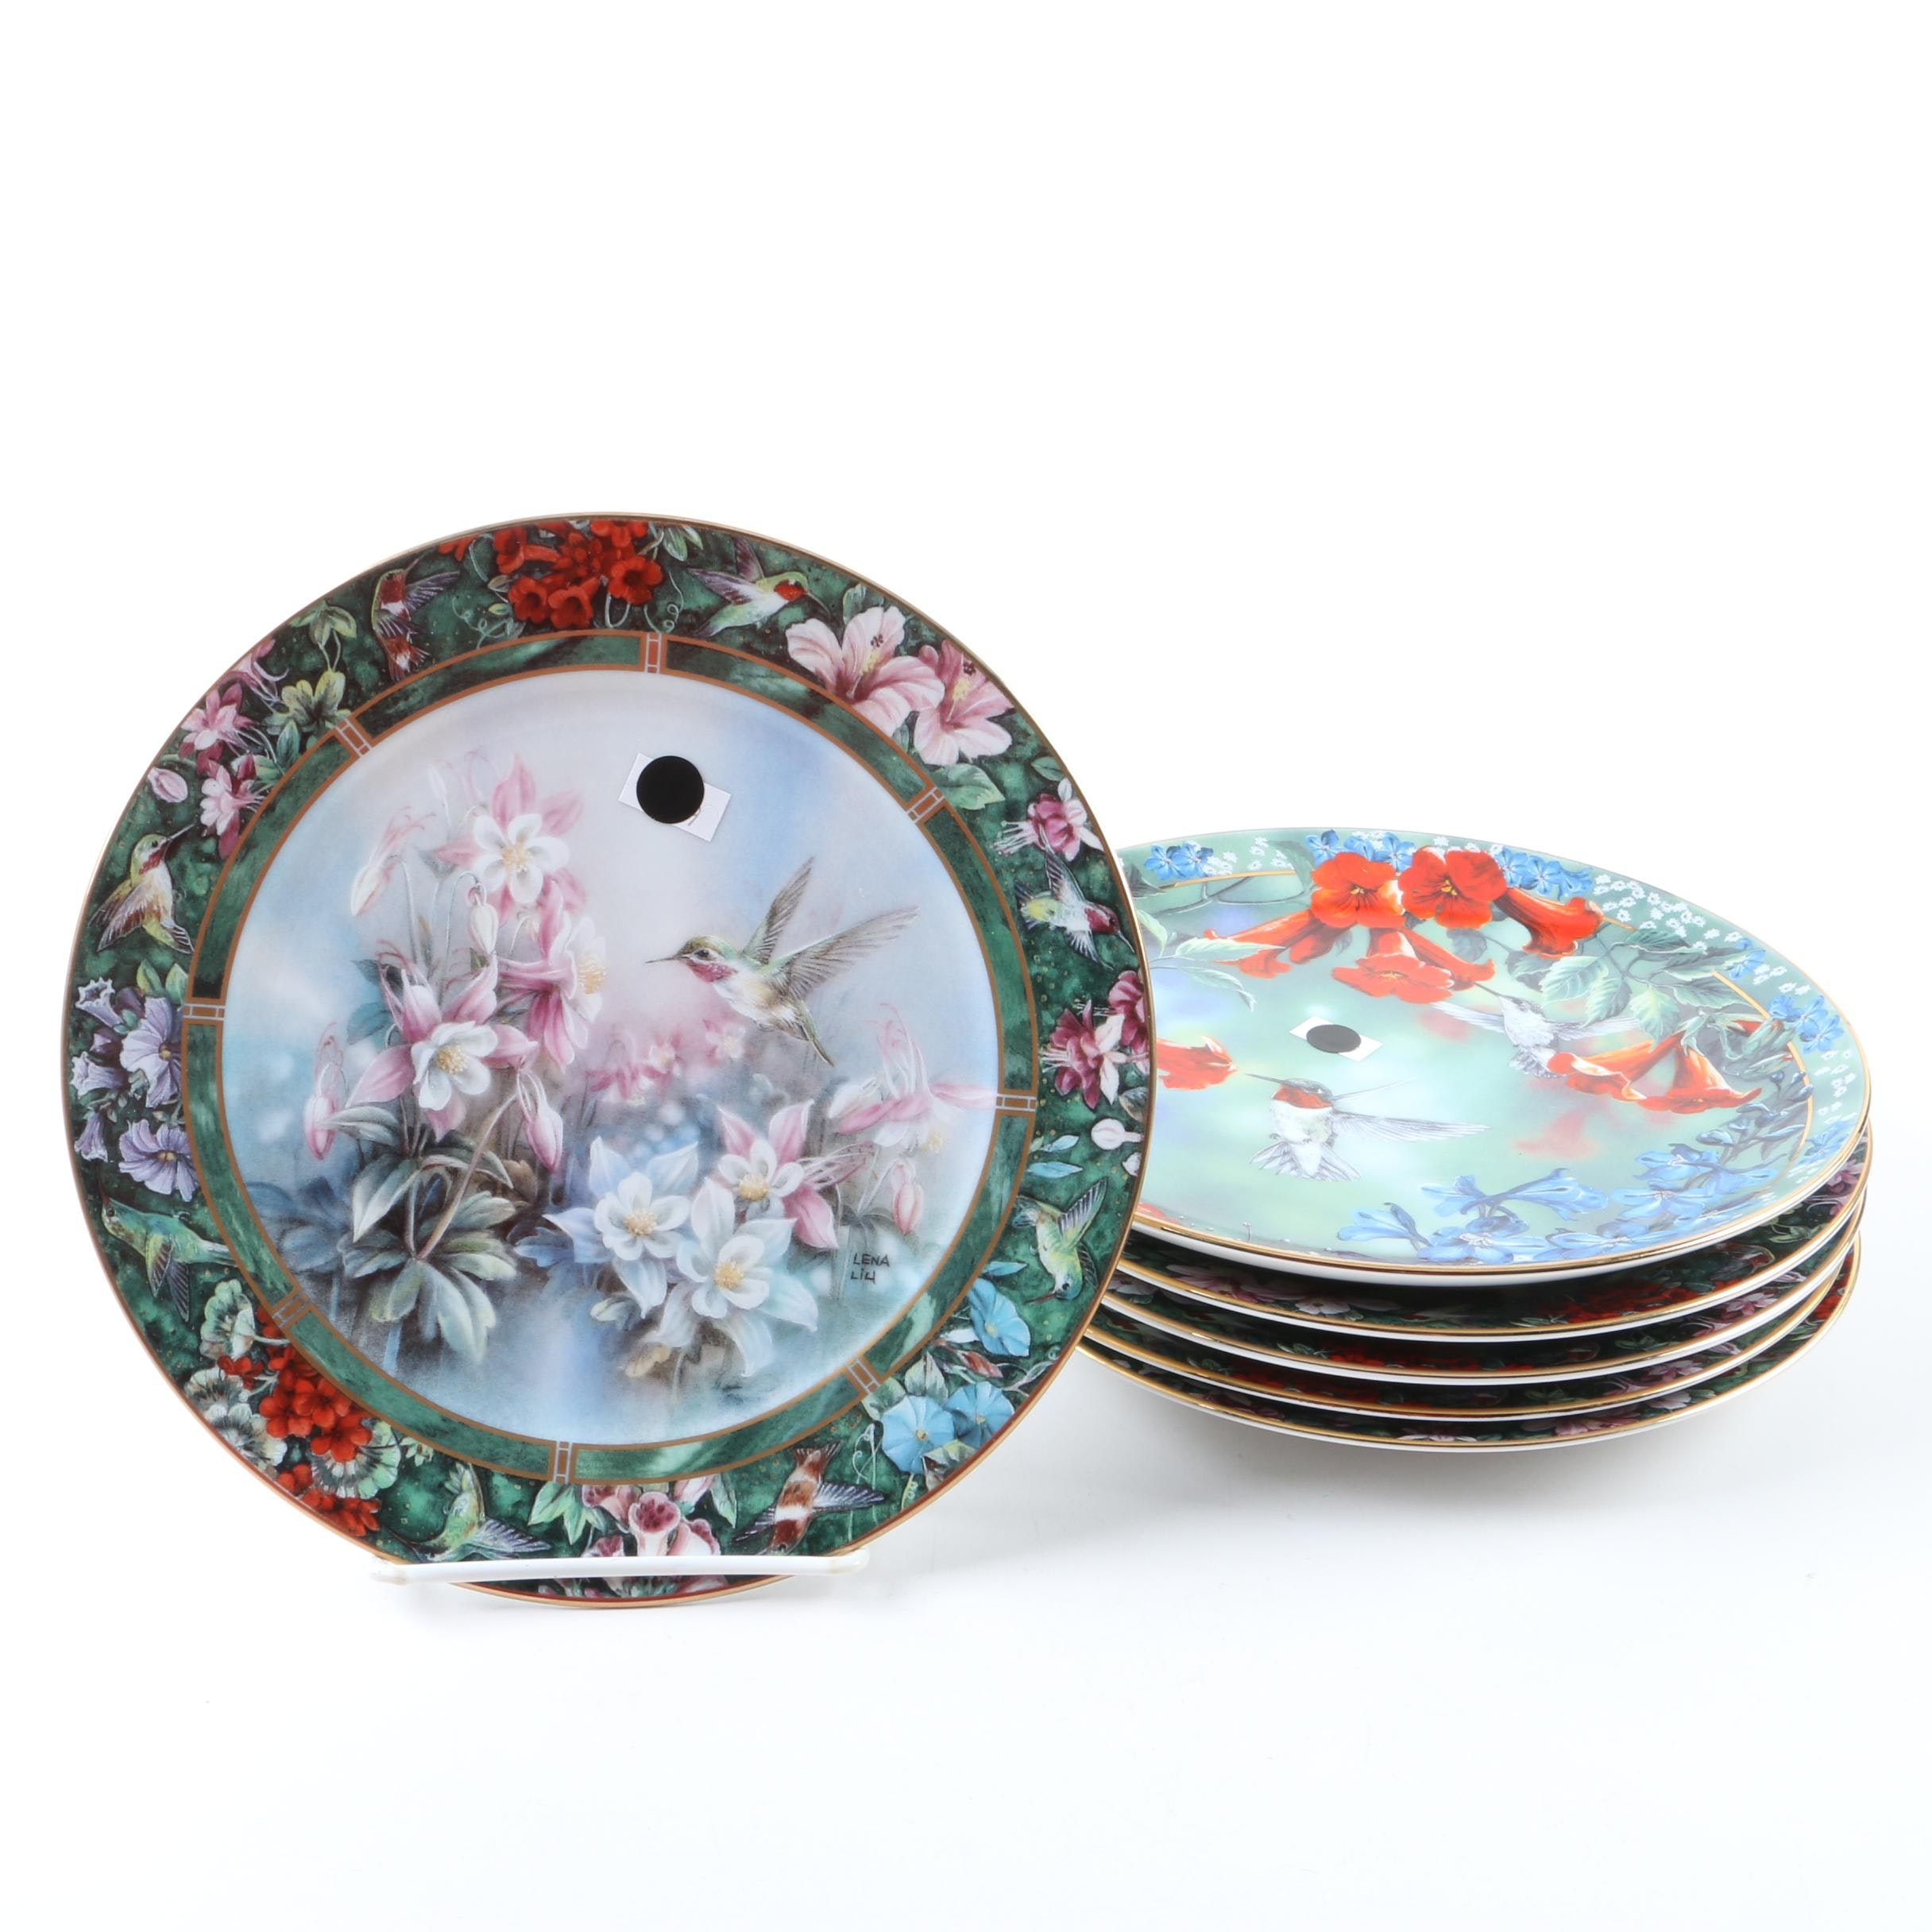 Limited Edition Hummingbird Plates by Janene Grende and Lena Liu ...  sc 1 st  EBTH.com & Limited Edition Hummingbird Plates by Janene Grende and Lena Liu : EBTH